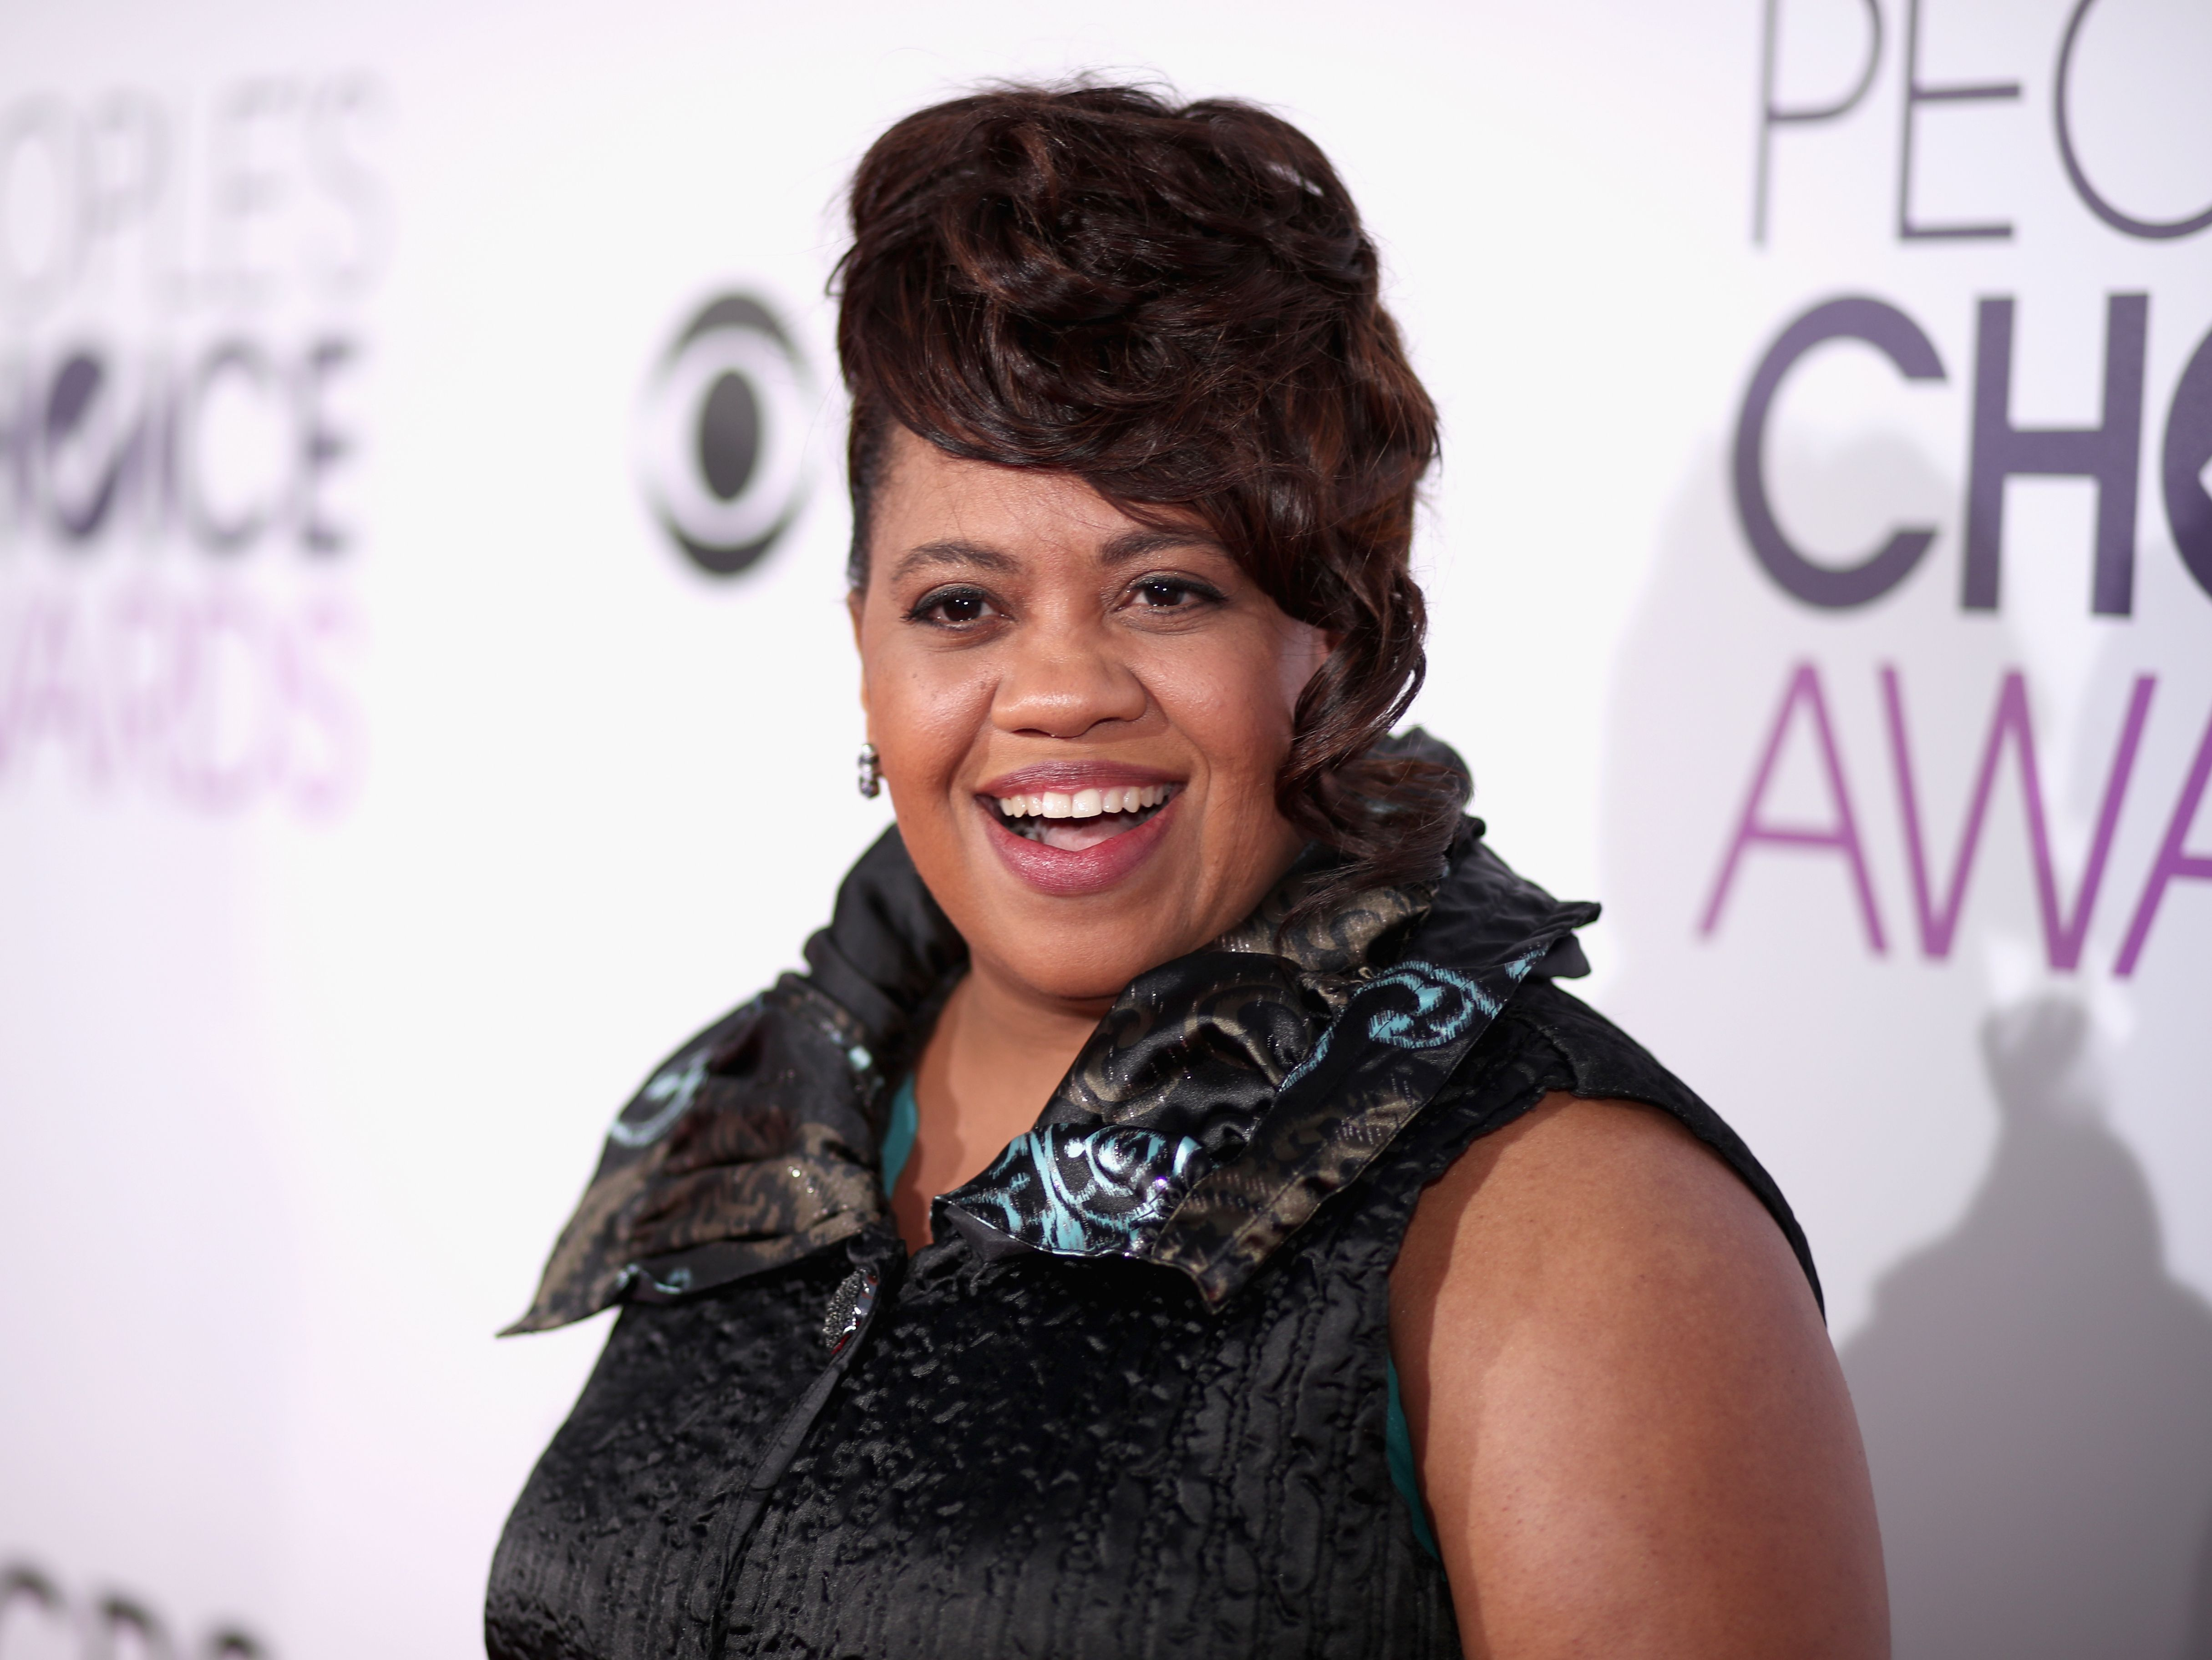 Chandra Wilson at the People's Choice Awards on January 18, 2017, in Los Angeles, California | Photo: Christopher Polk/Getty Images